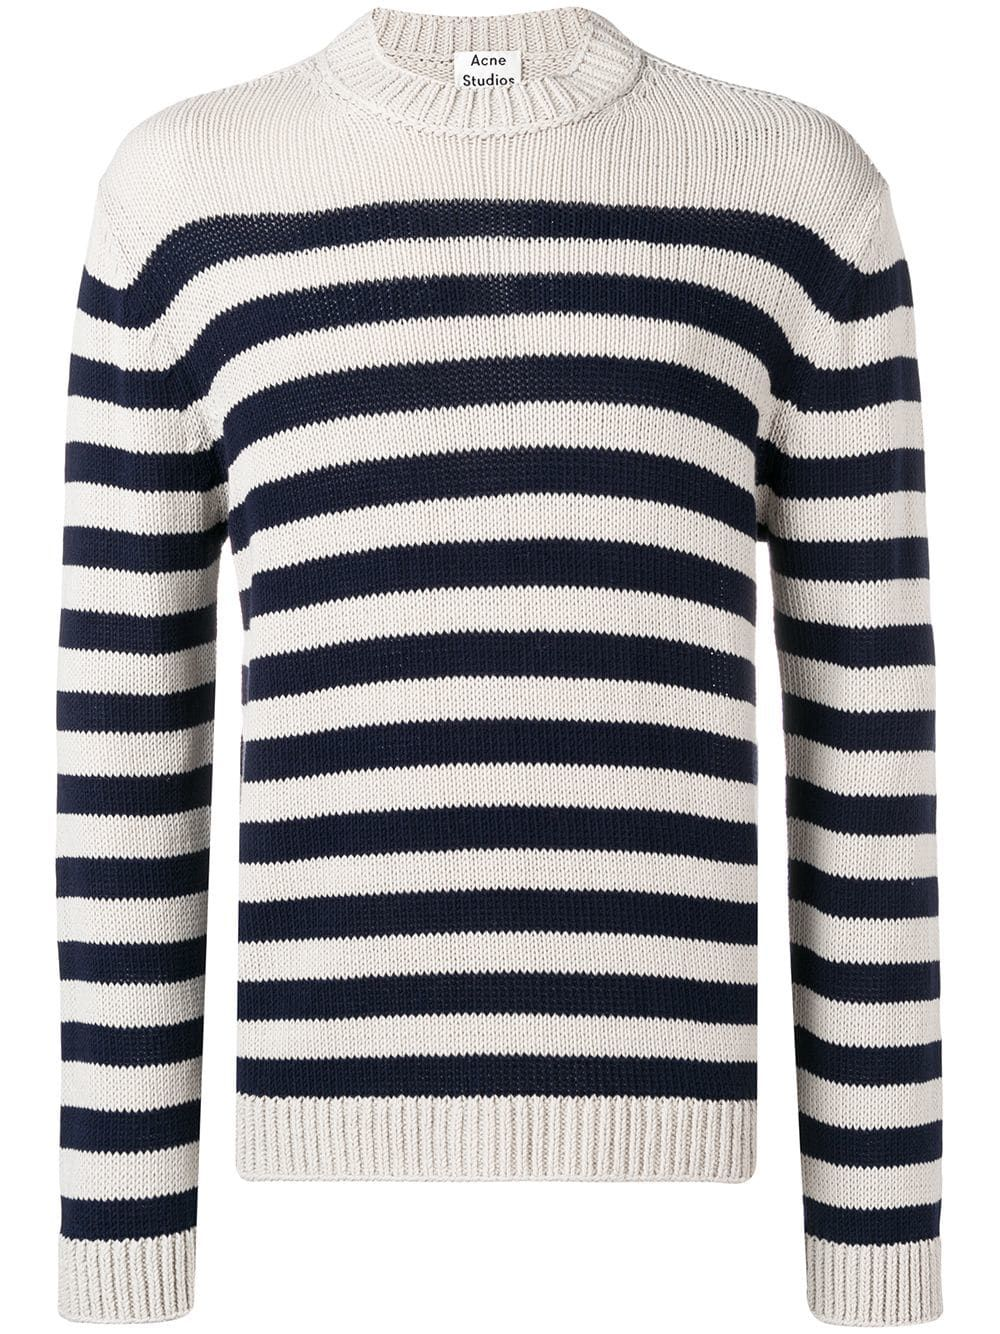 536d20d714c2 Acne Studios Breton striped sweater - Blue in 2019 | Products | Blue ...